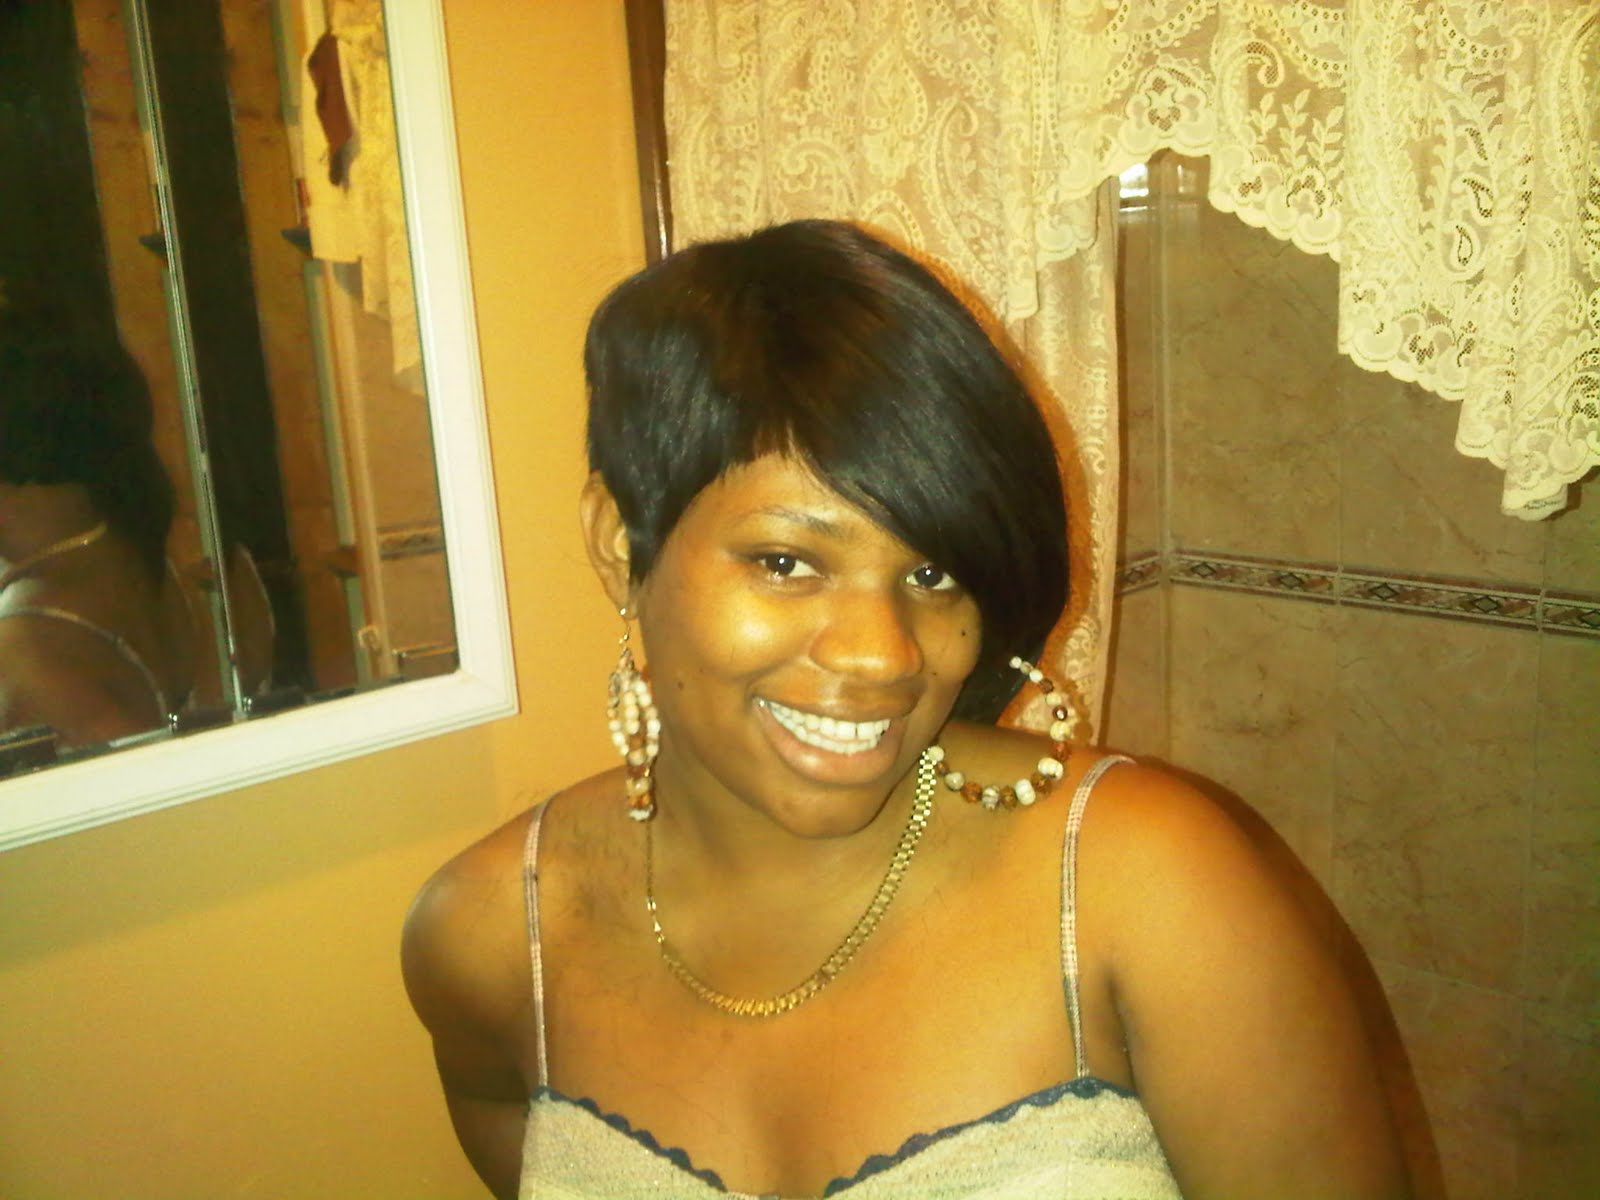 27 piece weave hairstyles pictures : ... Do A Spike Hairstyle Using H27 Piece Hair Weave Short Hairstyle 2013